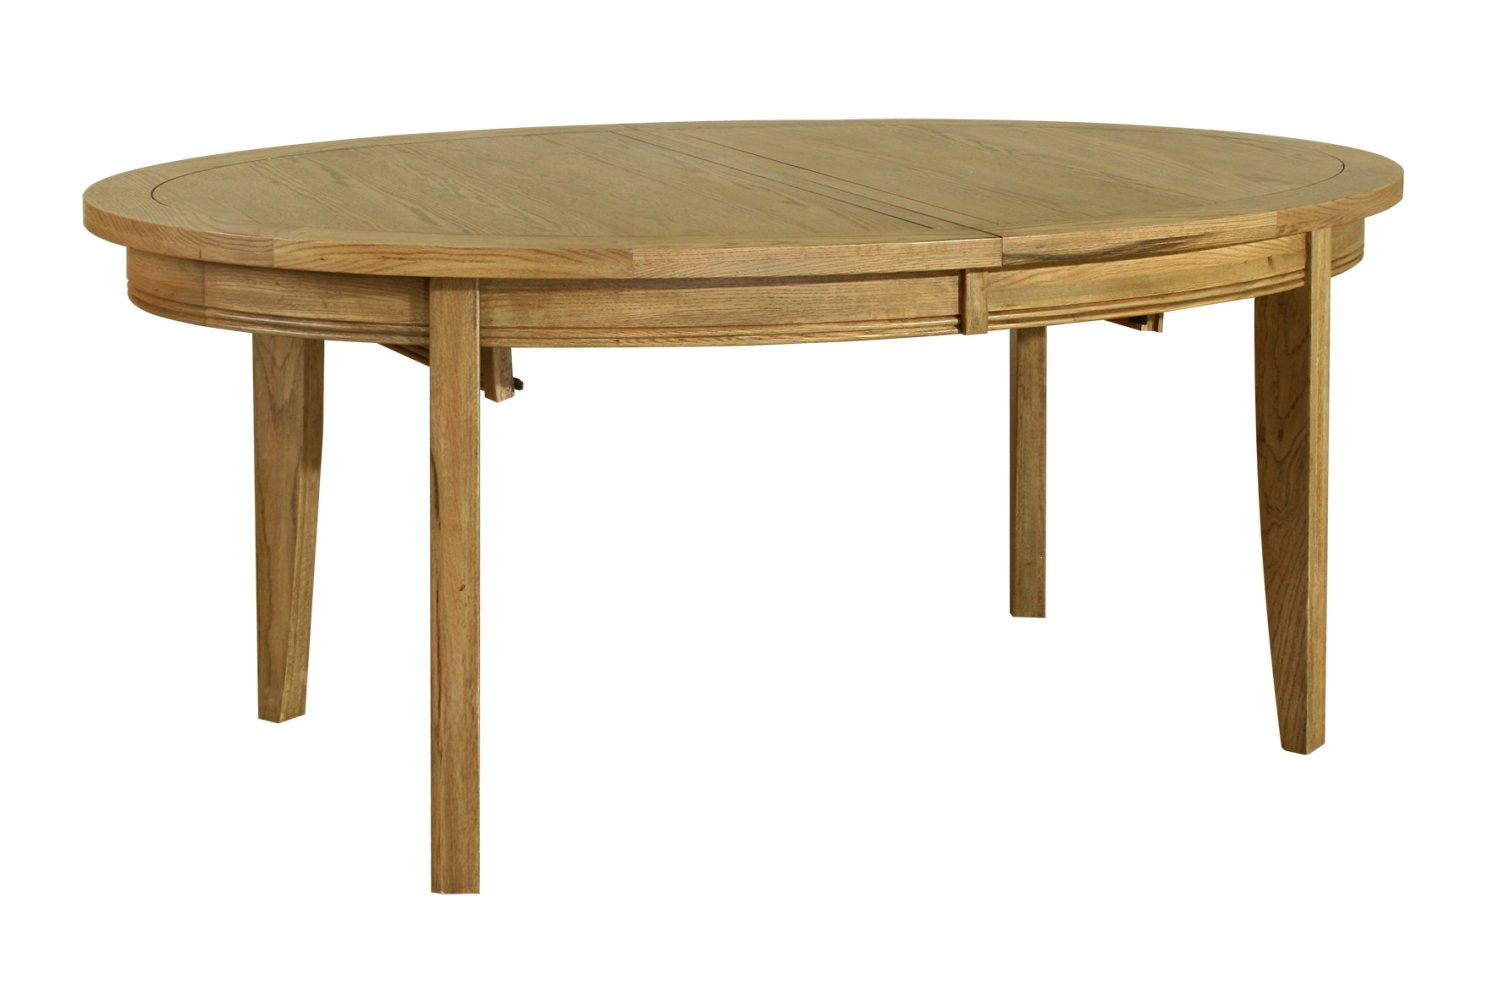 Linden solid oak dining room furniture oval extending Oval dining table